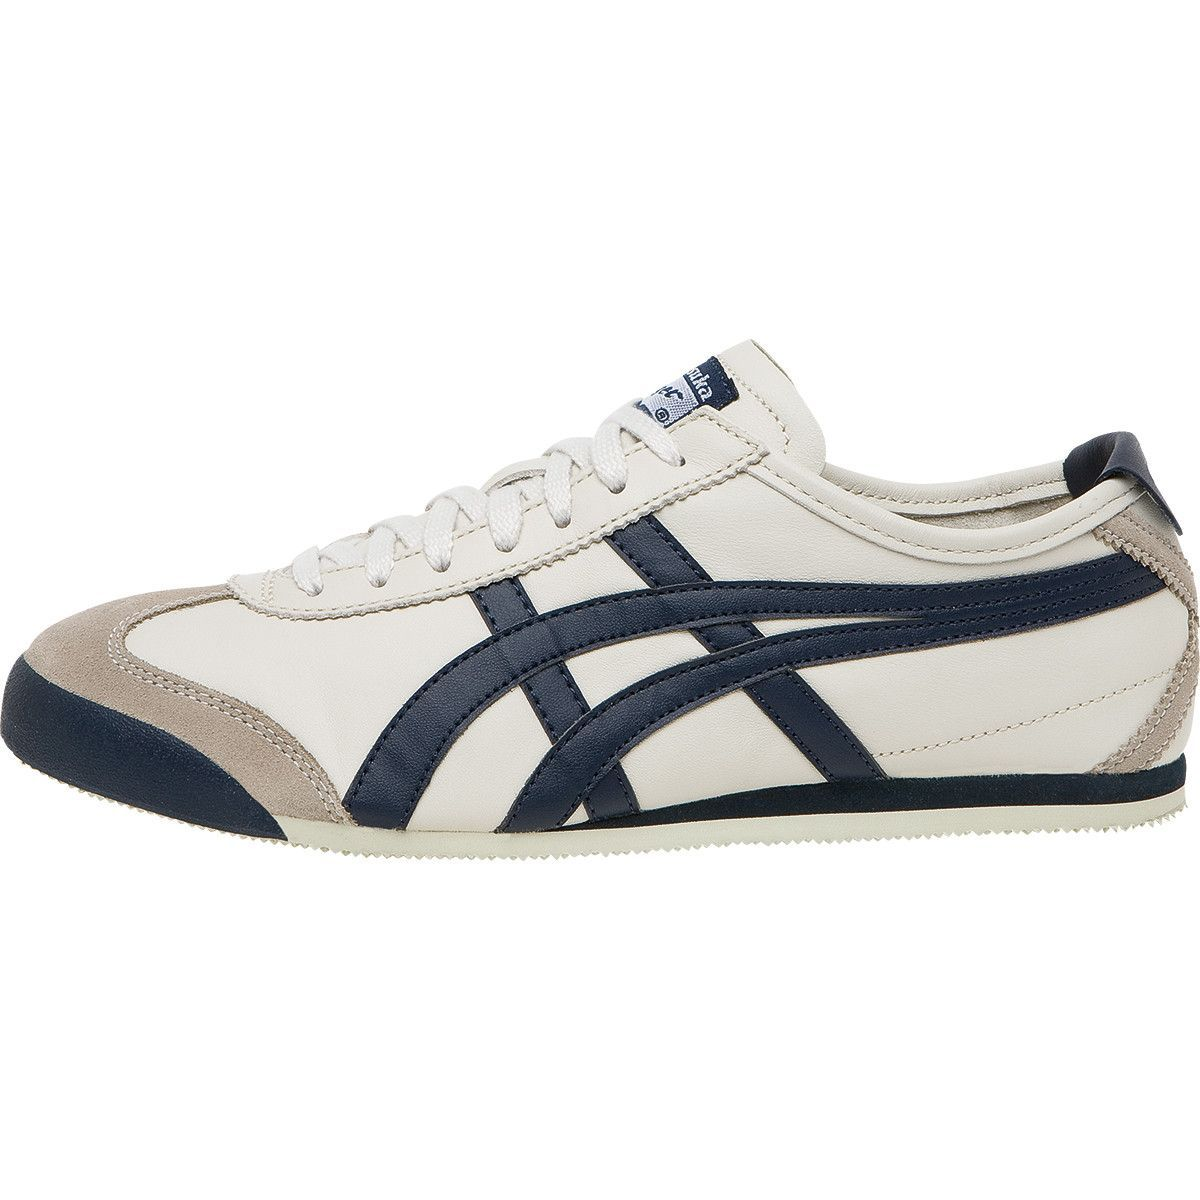 half off 0487f 58302 Onitsuka Tiger - Mexico 66 Sneaker - Birch/Indian Ink ...